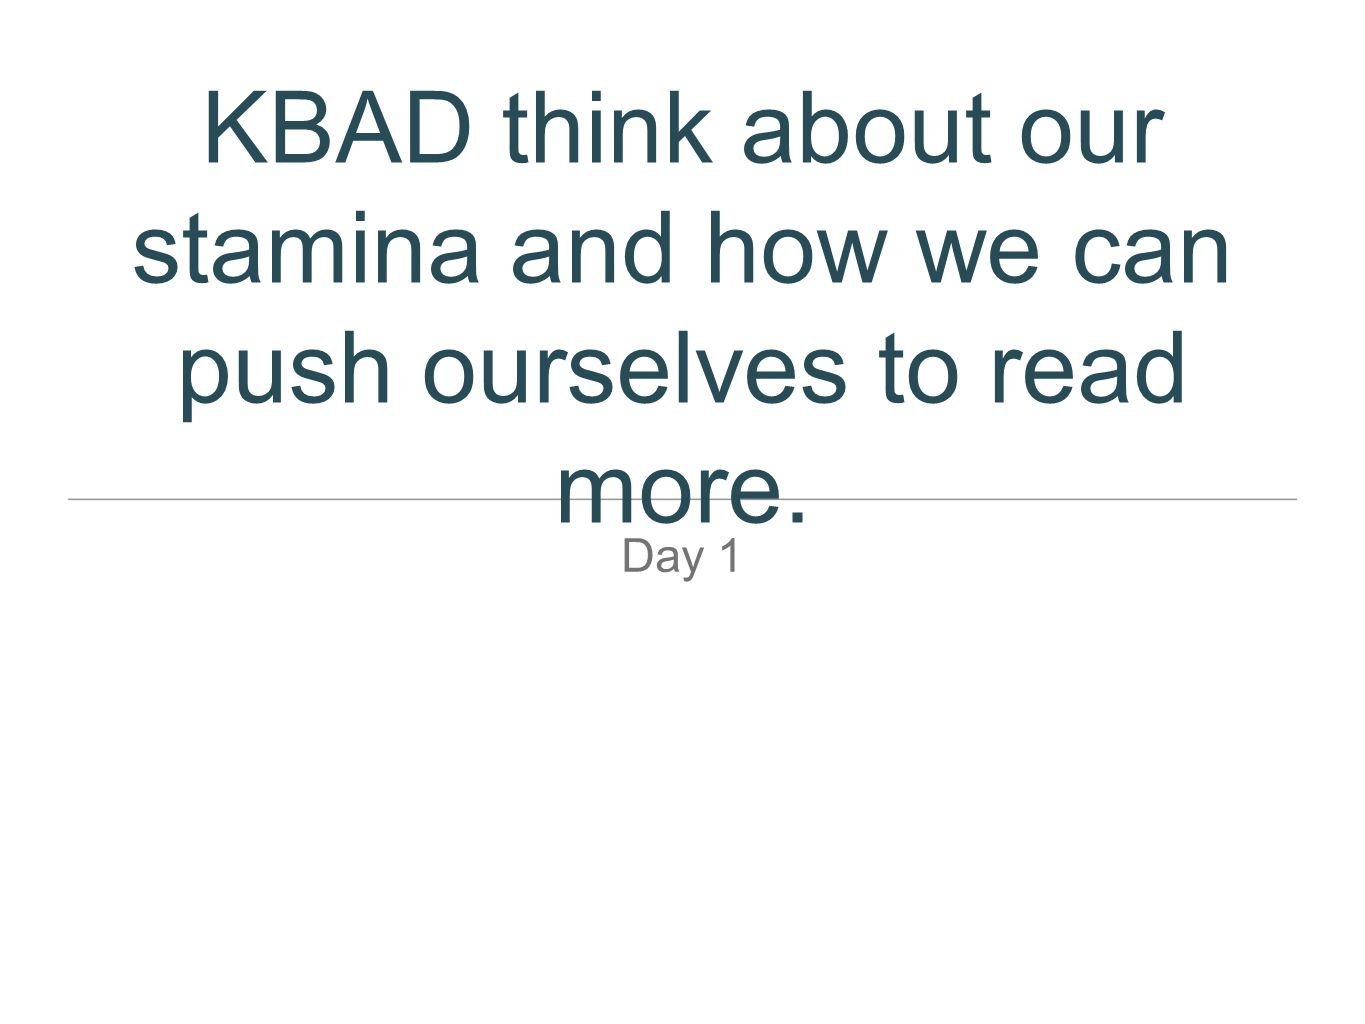 KBAD think about our stamina and how we can push ourselves to read more.